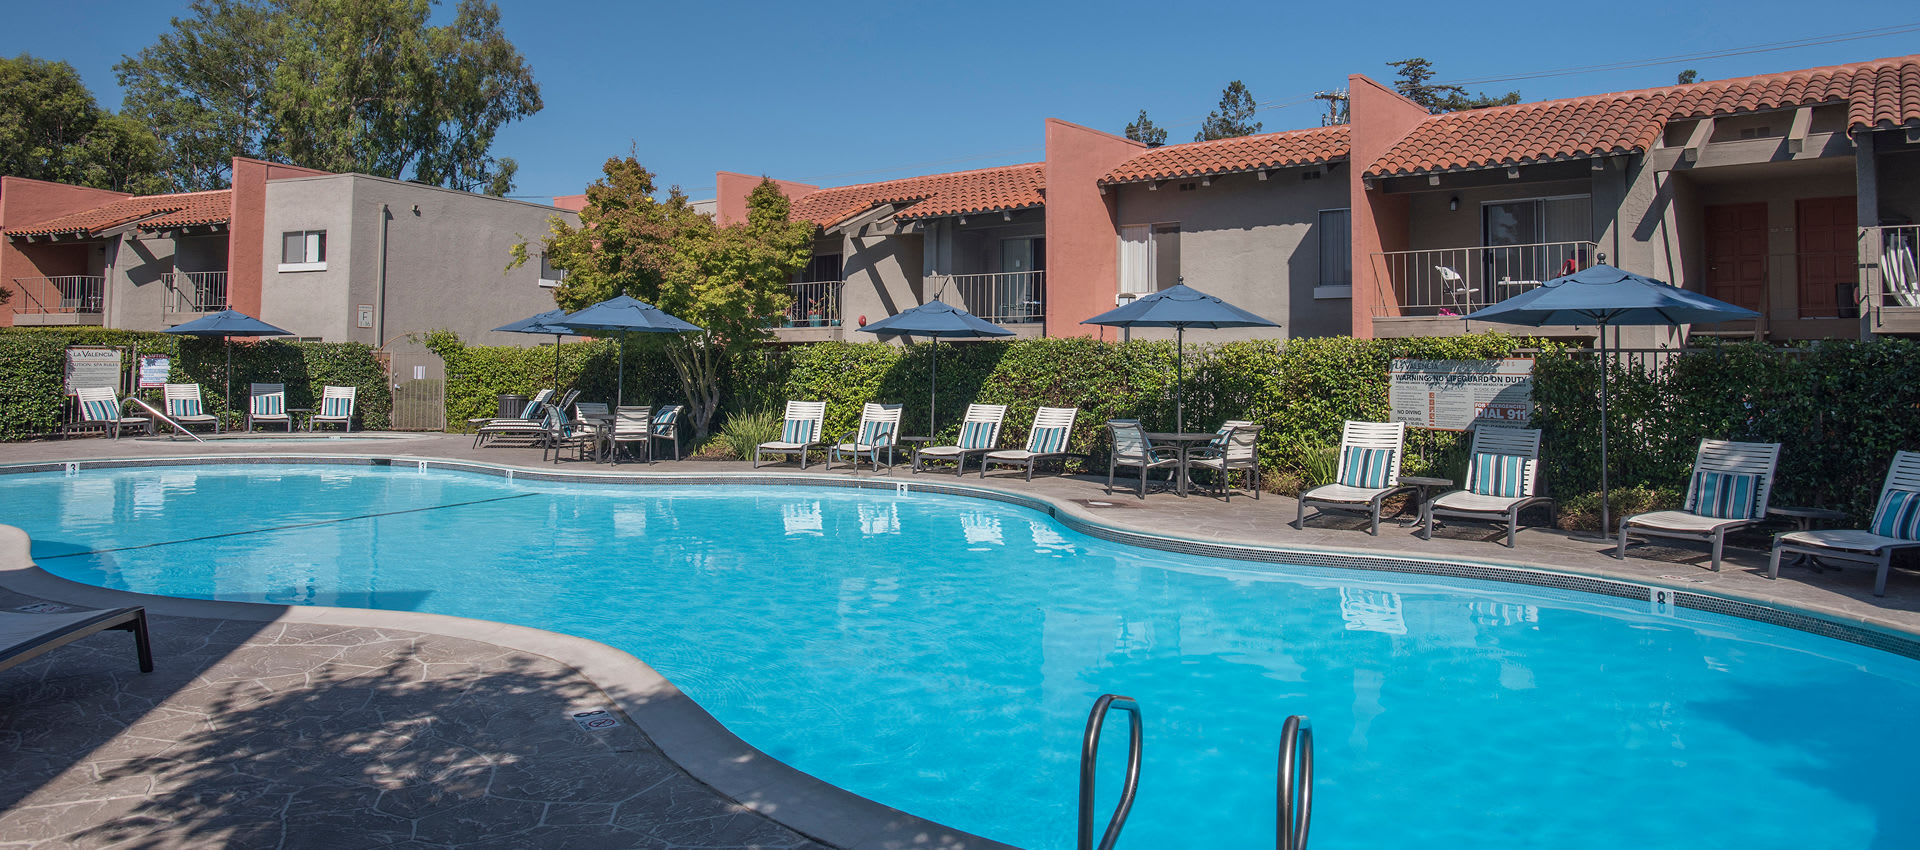 Swimming pool at La Valencia Apartment Homes in Campbell, California